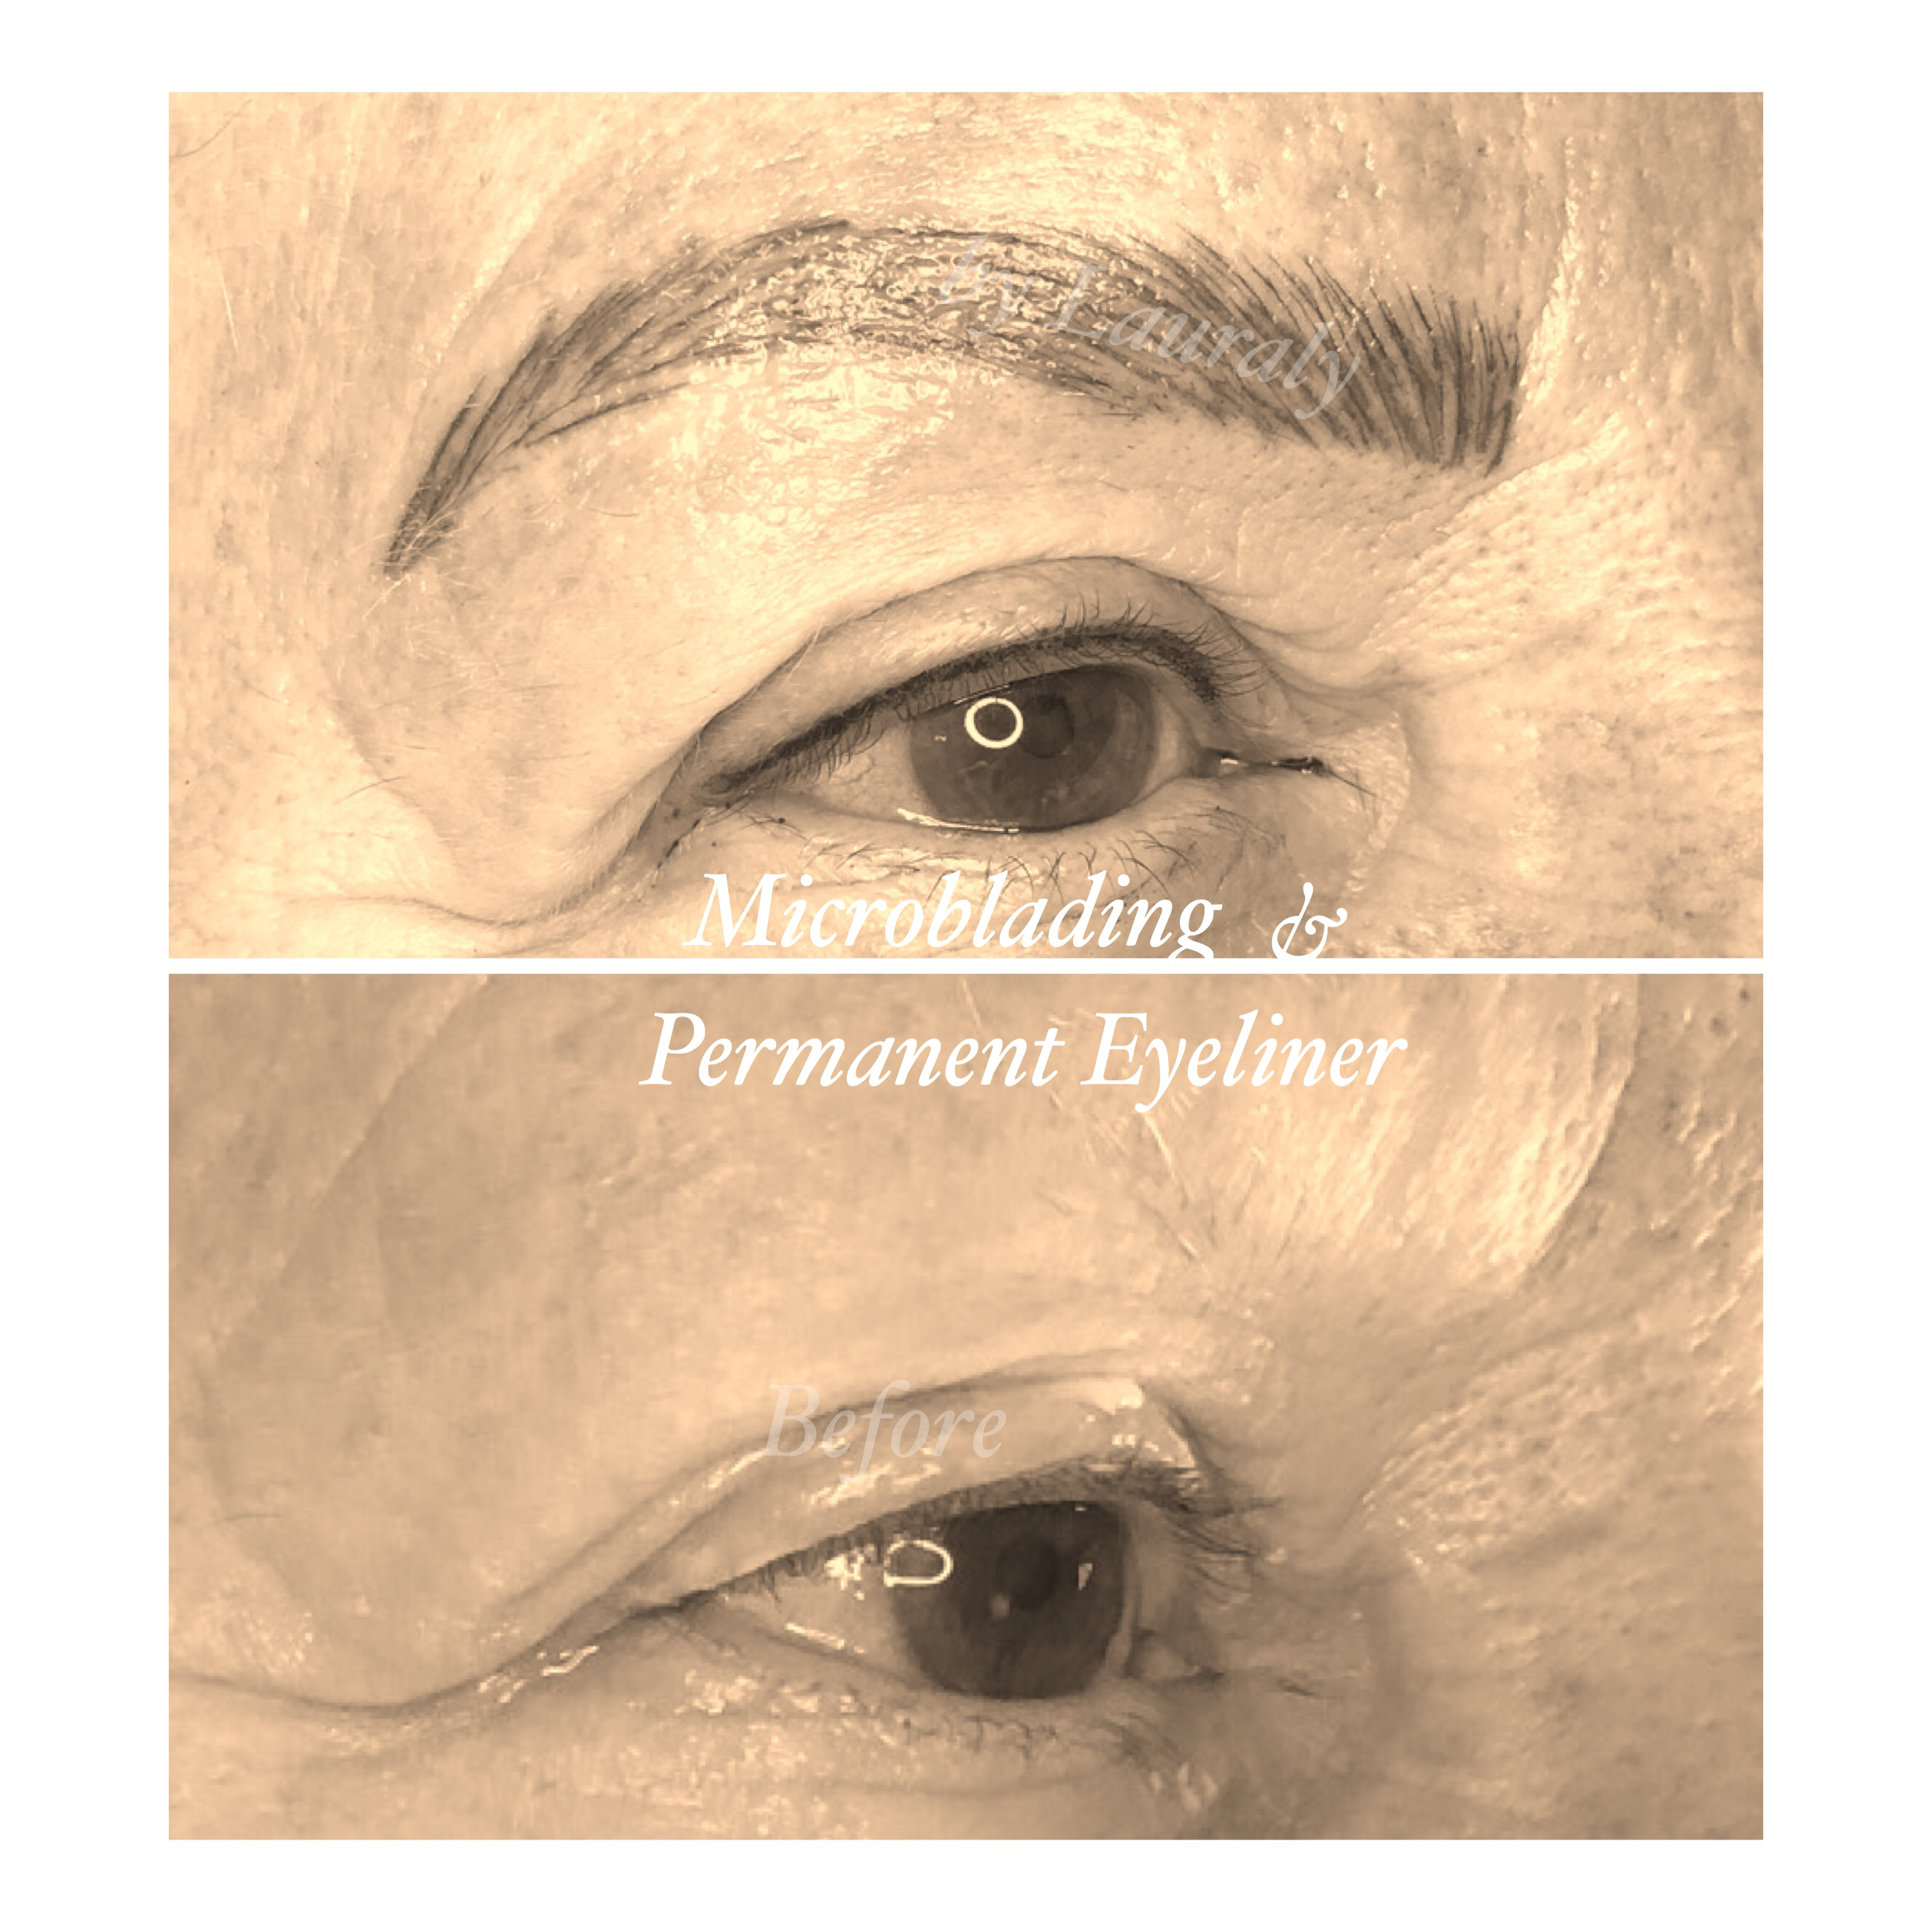 Semi-Permanent Eyeliner and Microblading